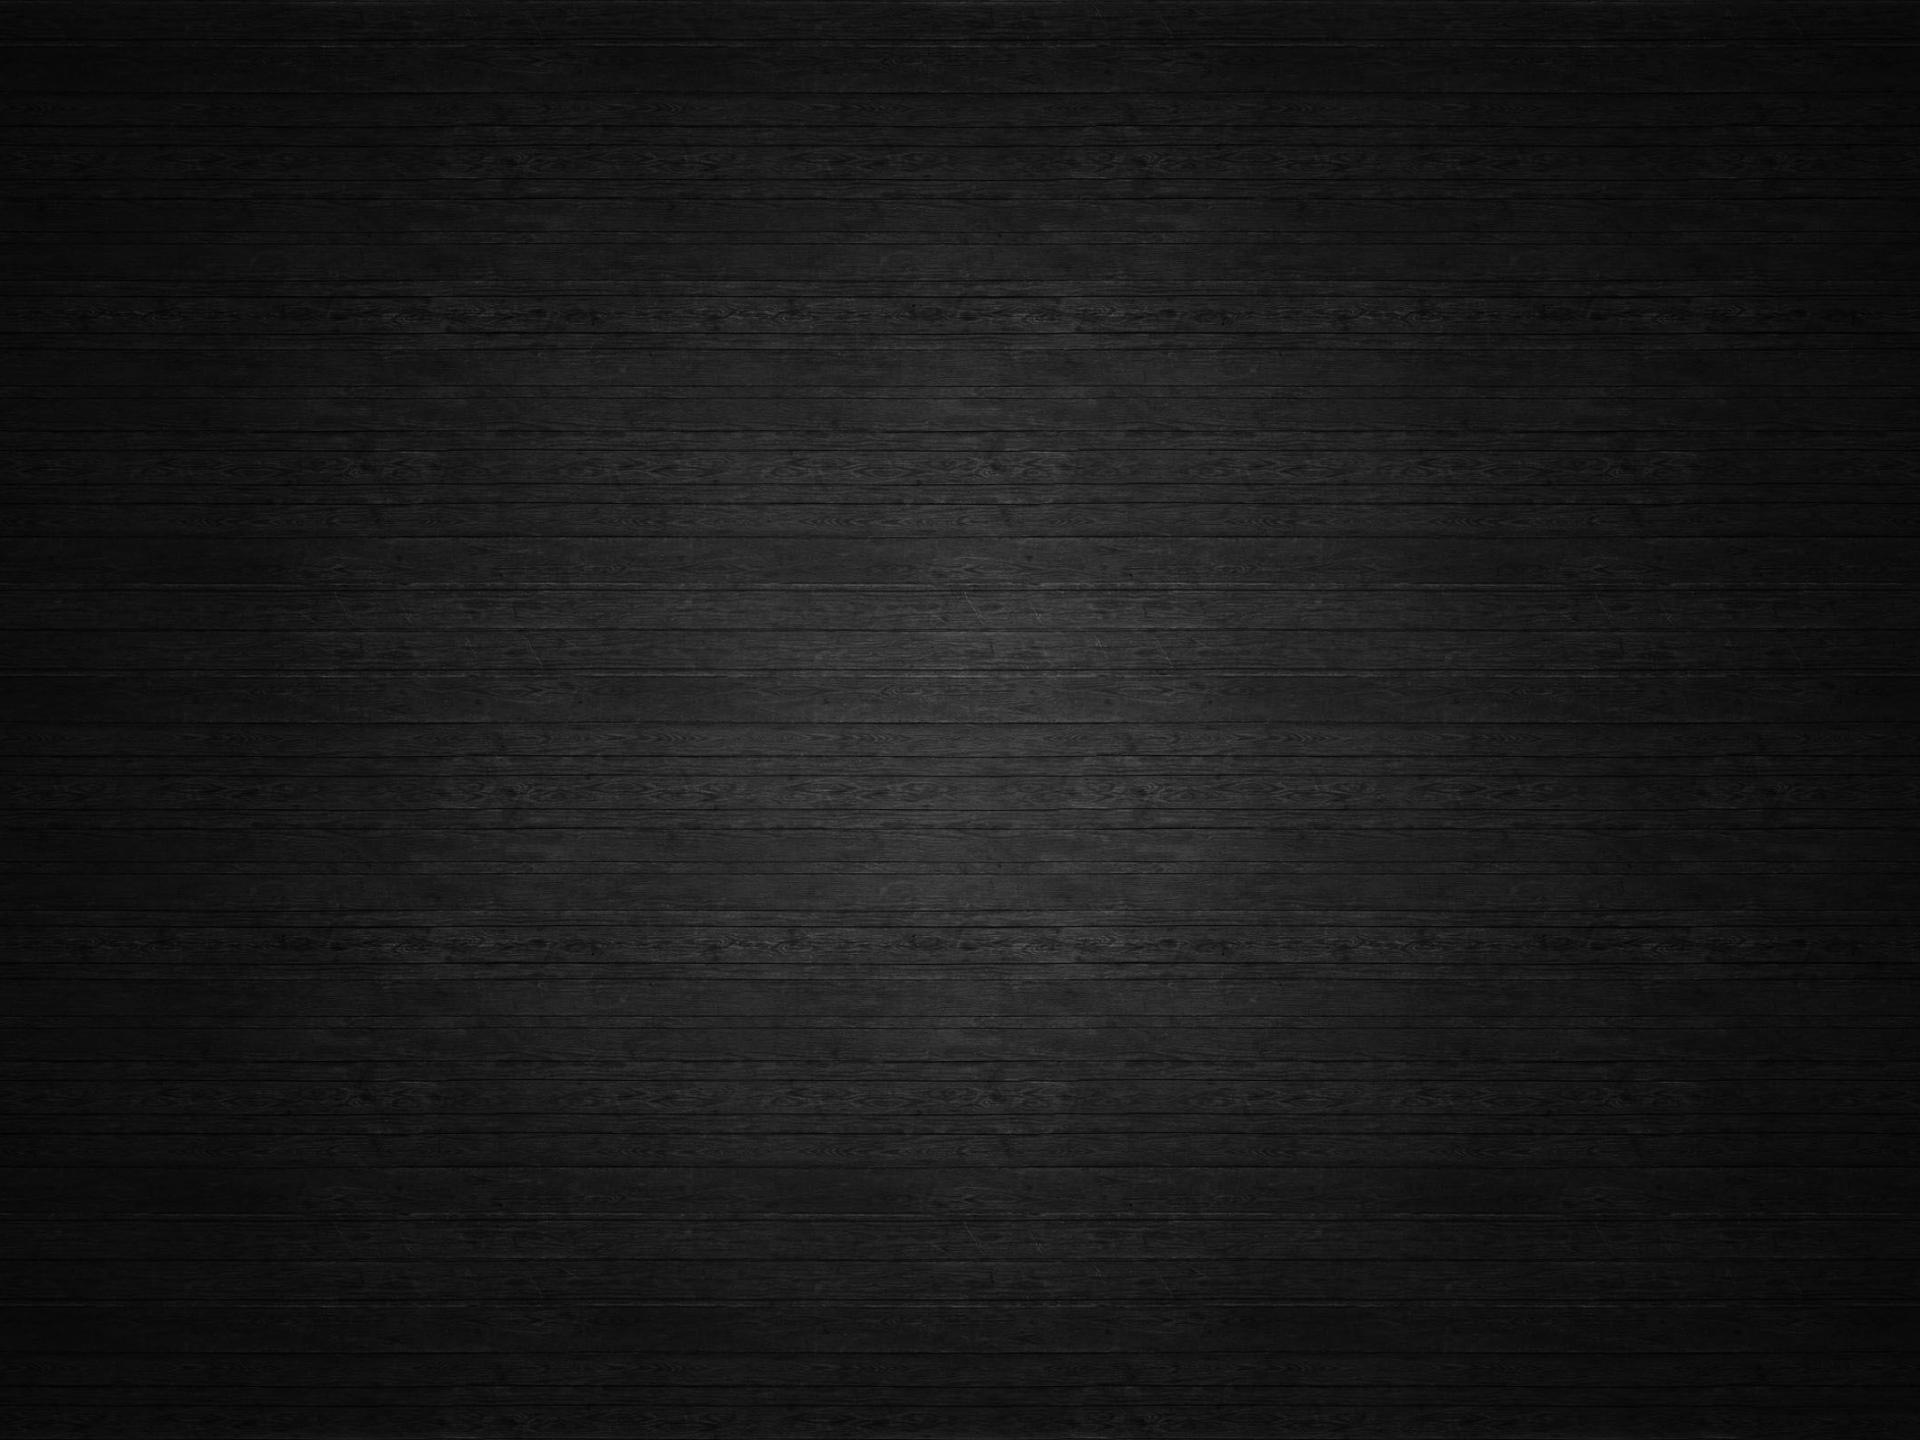 abstract black background wood 01 backgrounds wallpapersjpg 1920x1440